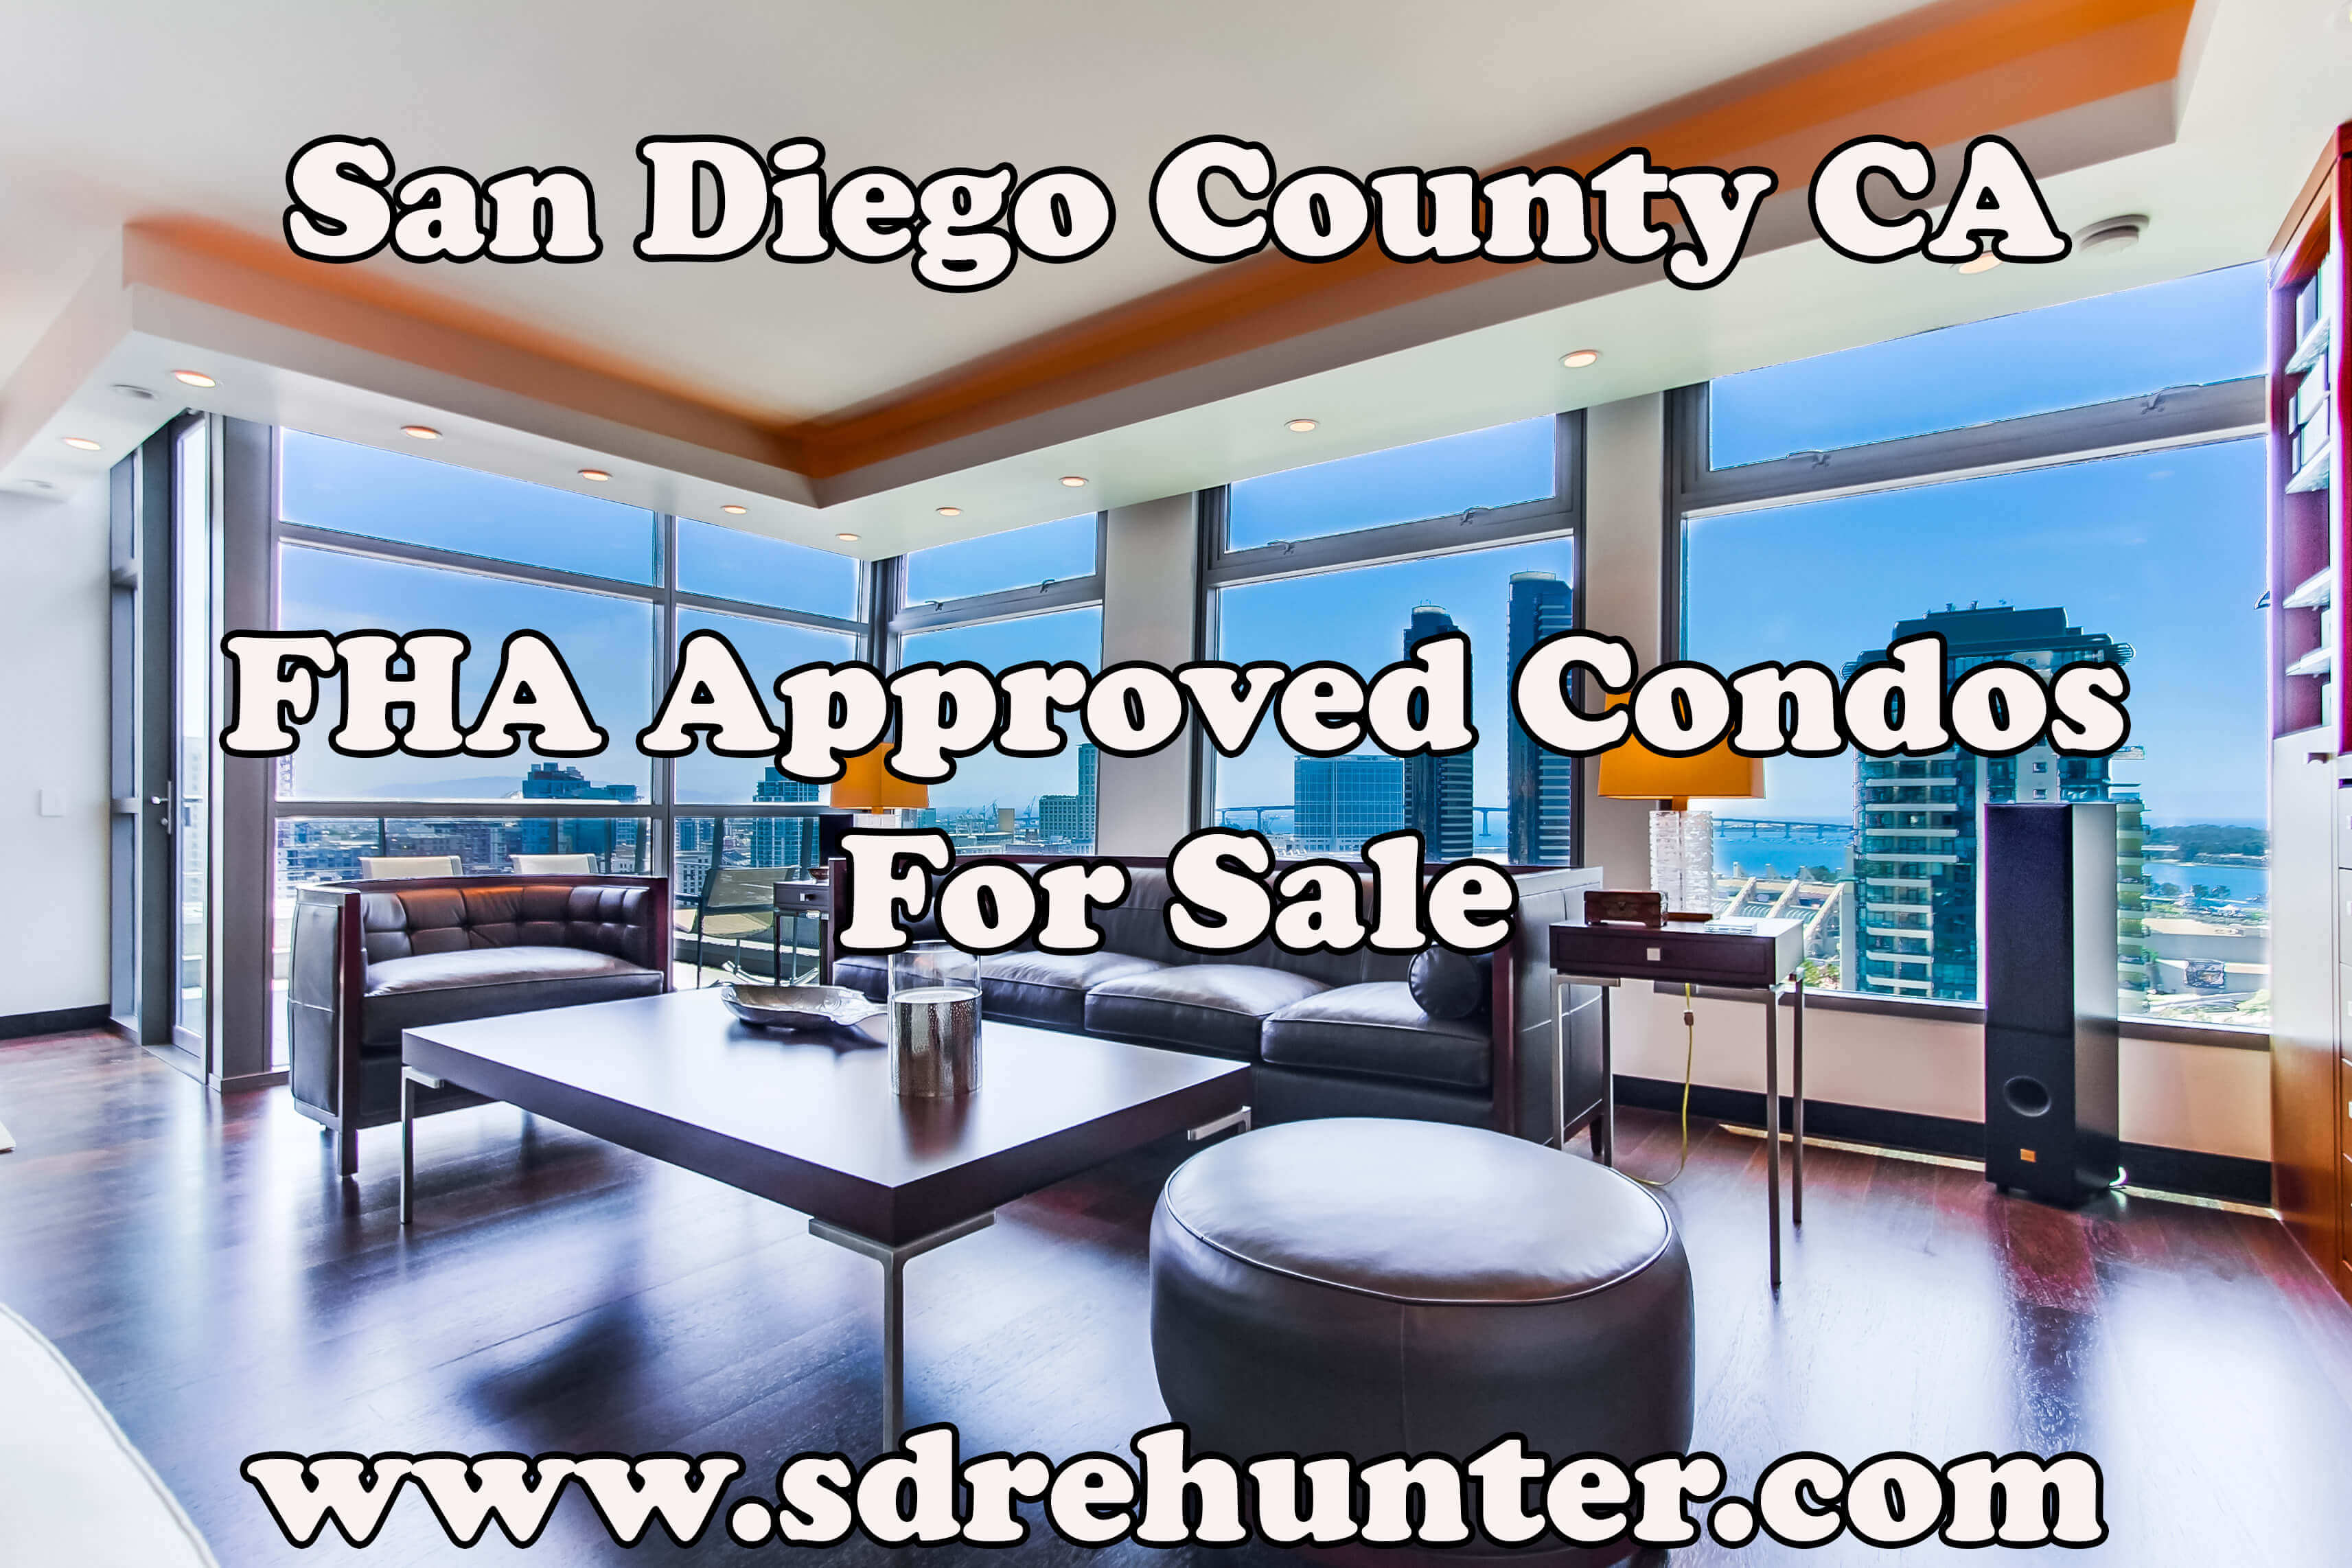 San Diego County CA FHA Approved Condos For Sale (2017 Update)